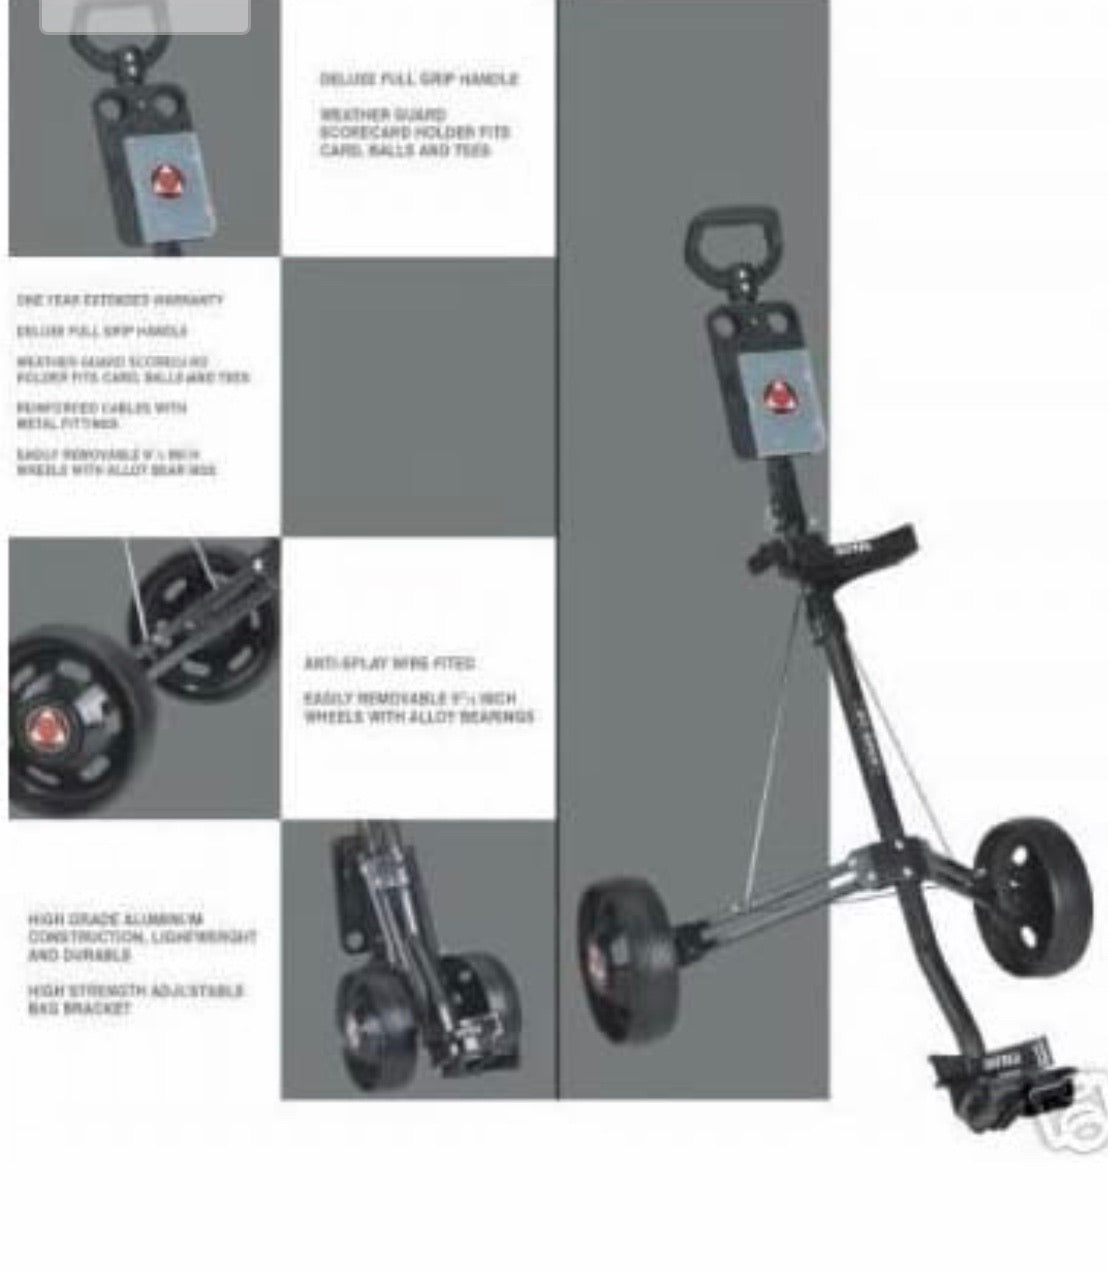 Force1 Complete Golf set (inc FREE Force1 Trolley worth £40)